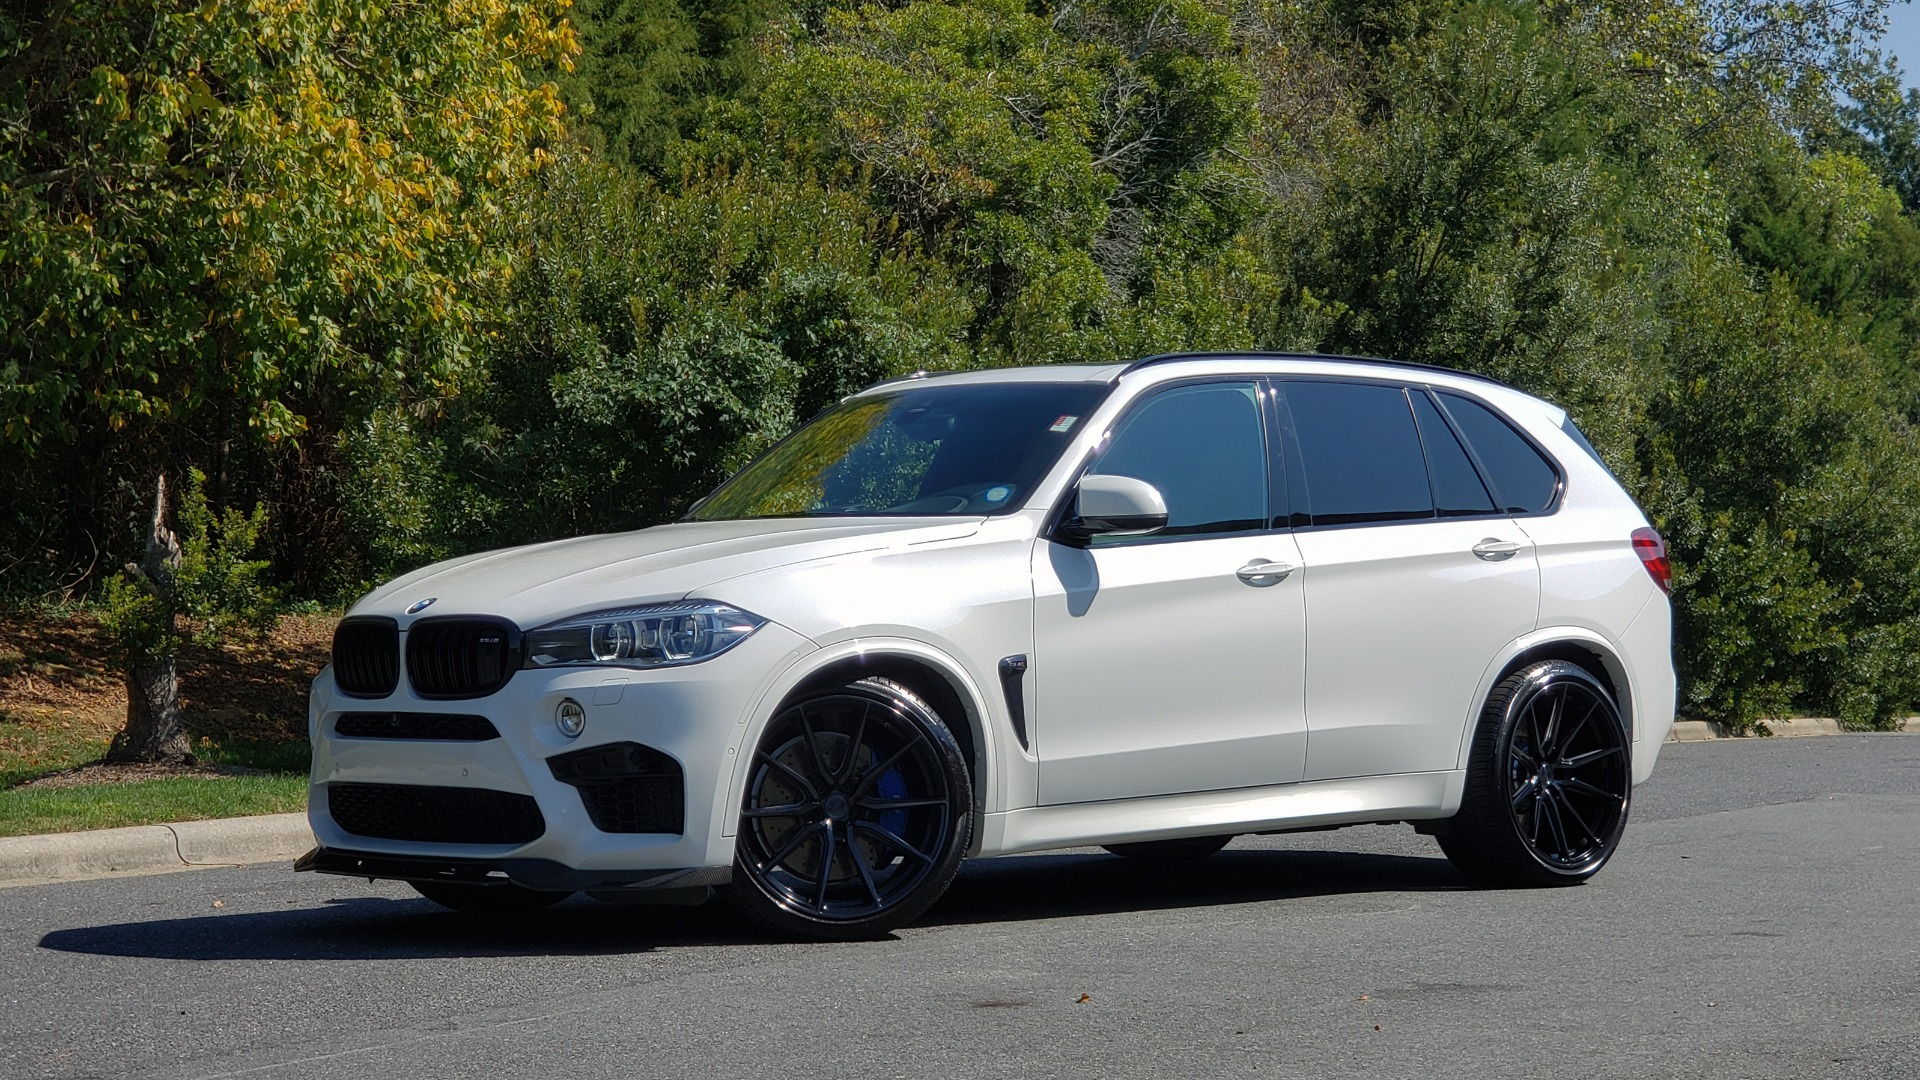 Used 2017 BMW X5 M SPORT / AWD / DRVR ASST / EXEC PKG / B&O SND / NIGHT VIS / PARK ASST for sale Sold at Formula Imports in Charlotte NC 28227 5